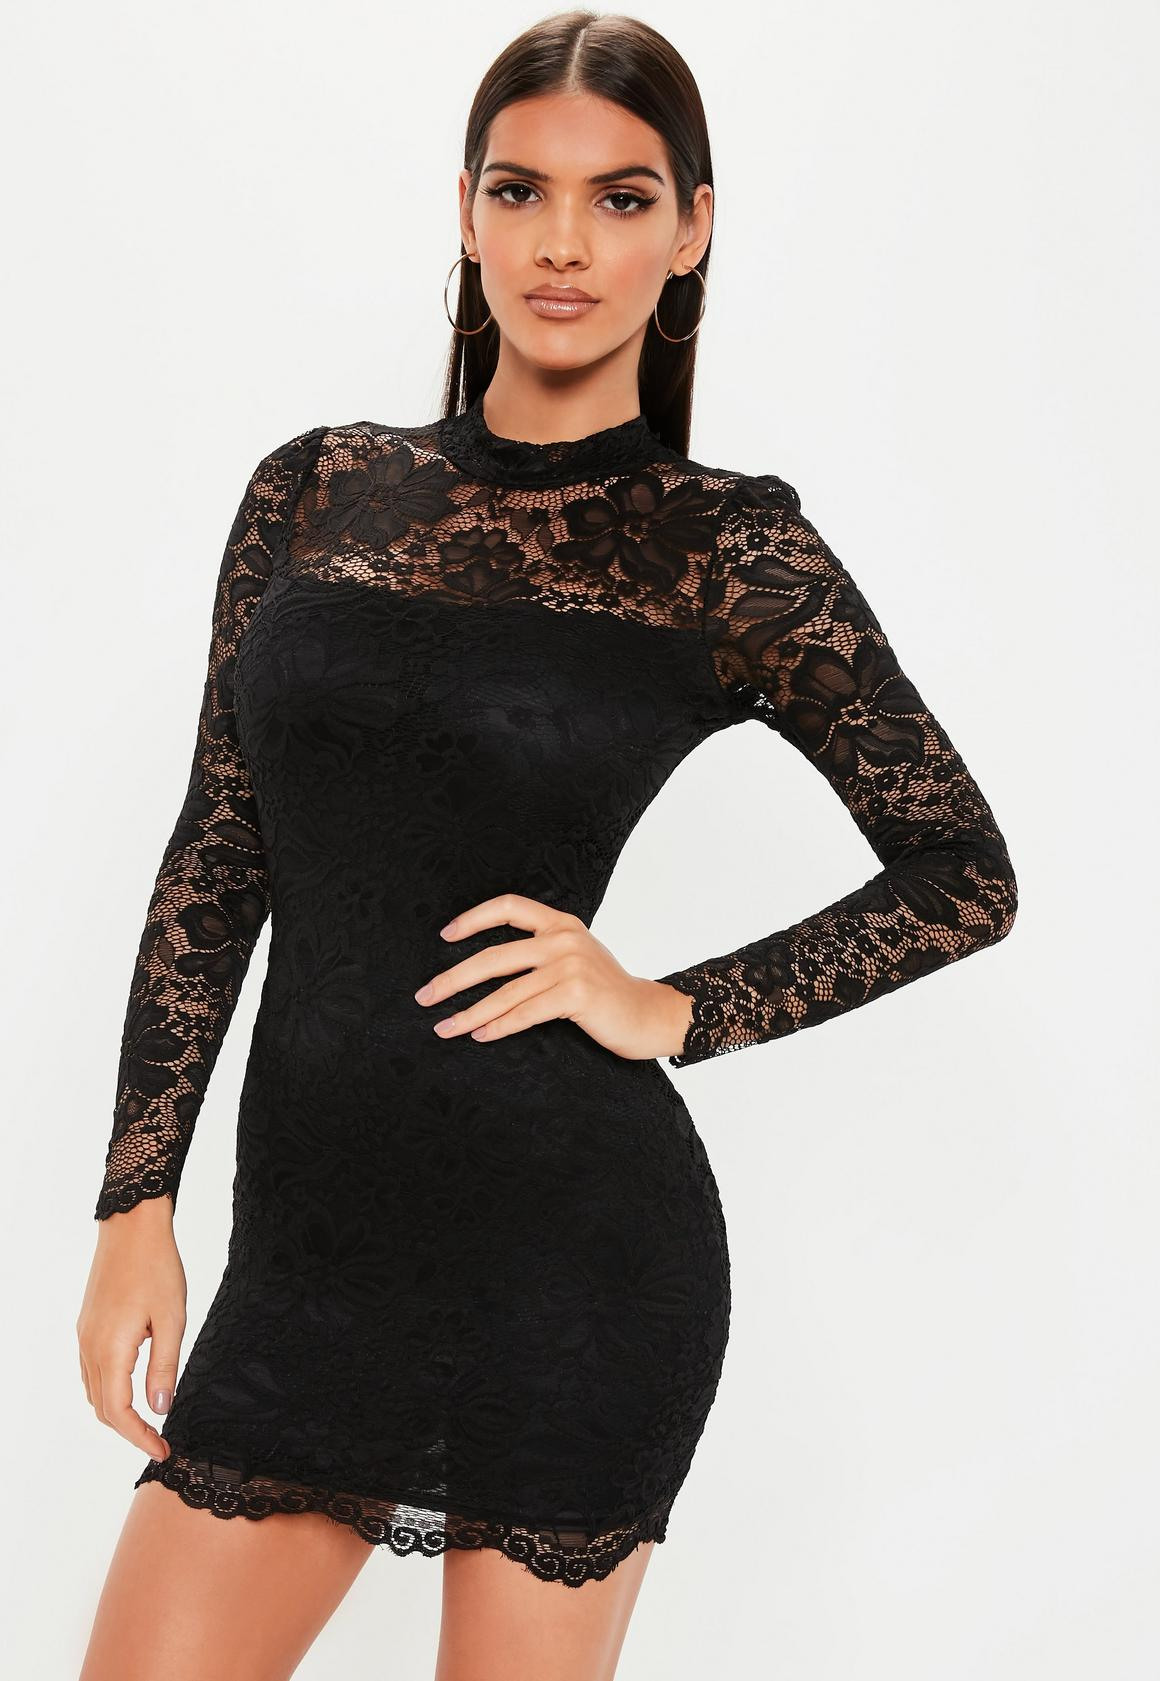 b4c0f64c0 Petite Black High Neck Long Sleeve Lace Midi Dress. Hover to Zoom. Hover to  Zoom